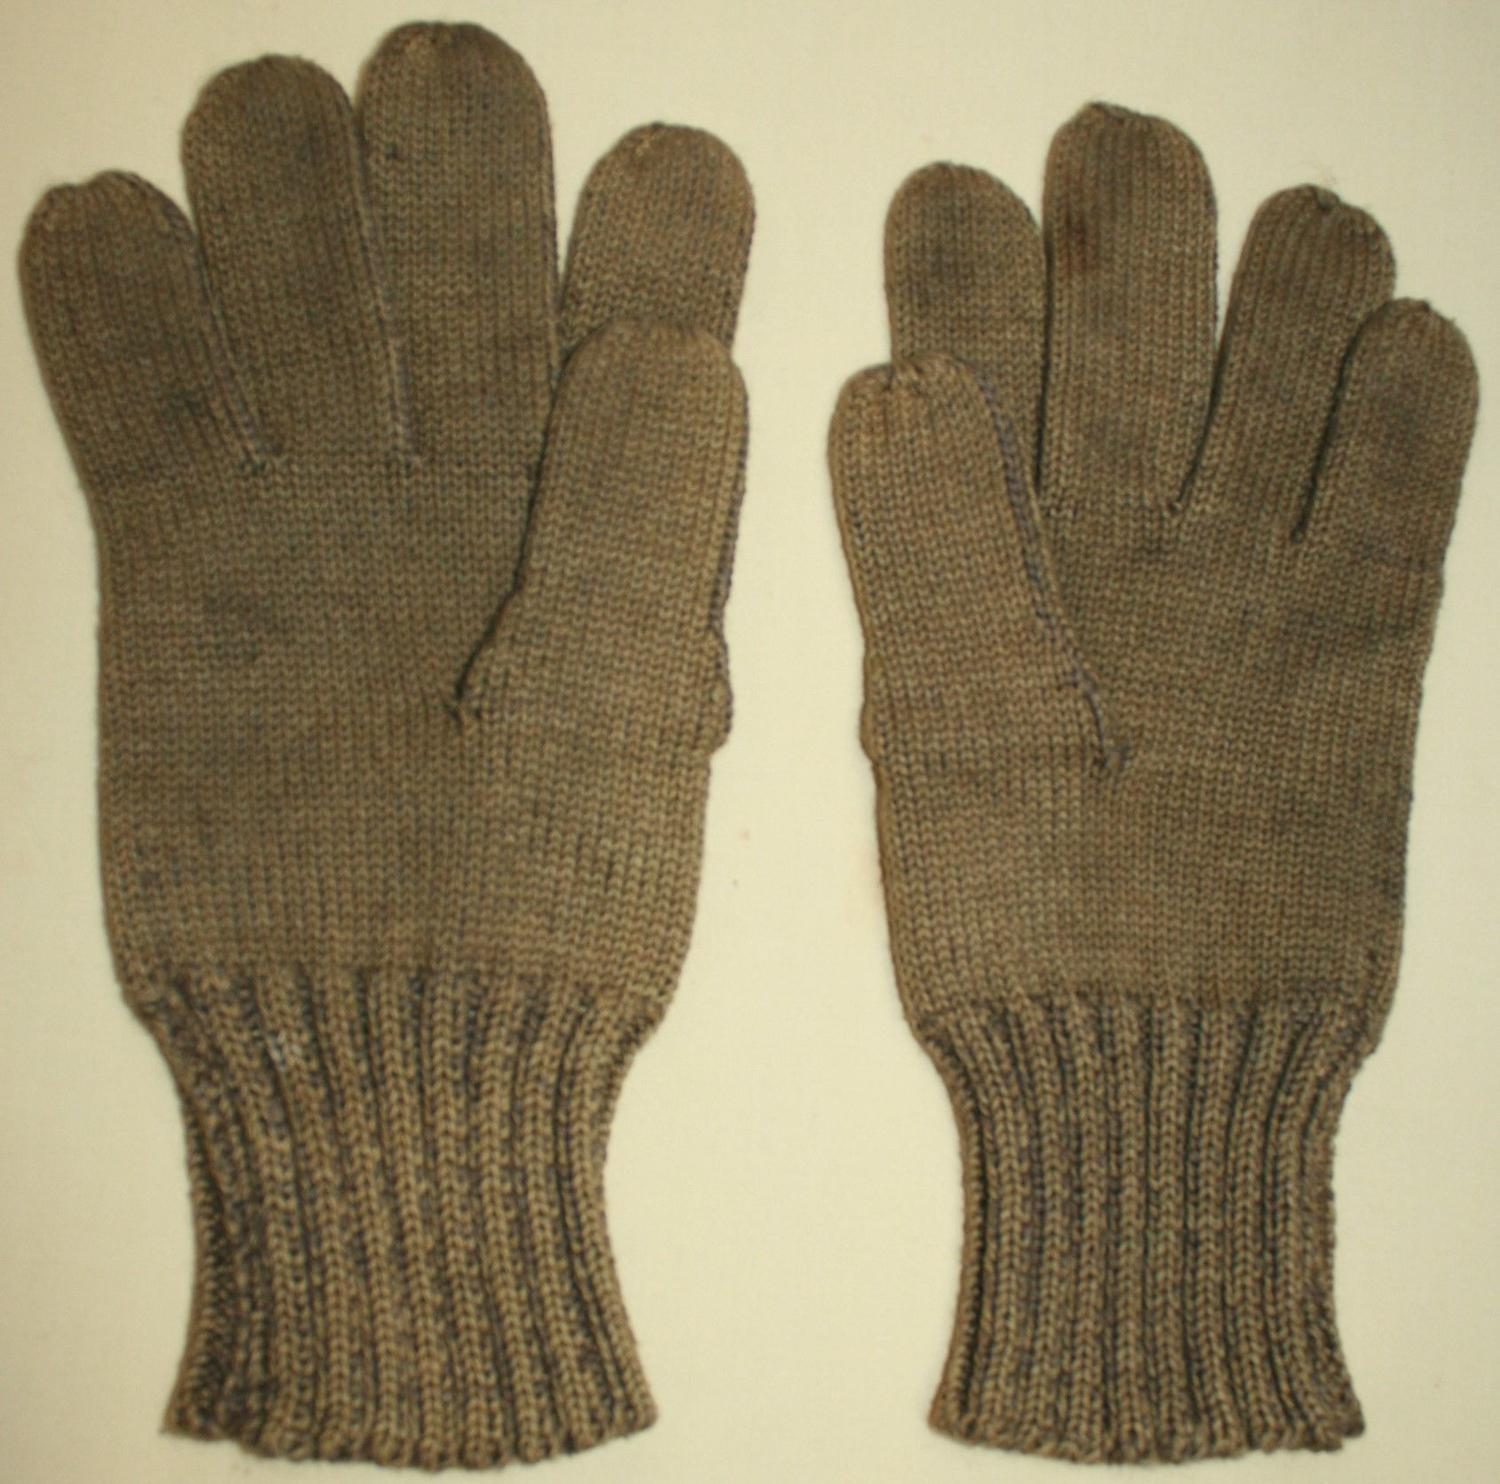 A PAIR OF MATCHING WWII PERIOD WOOL GLOVES